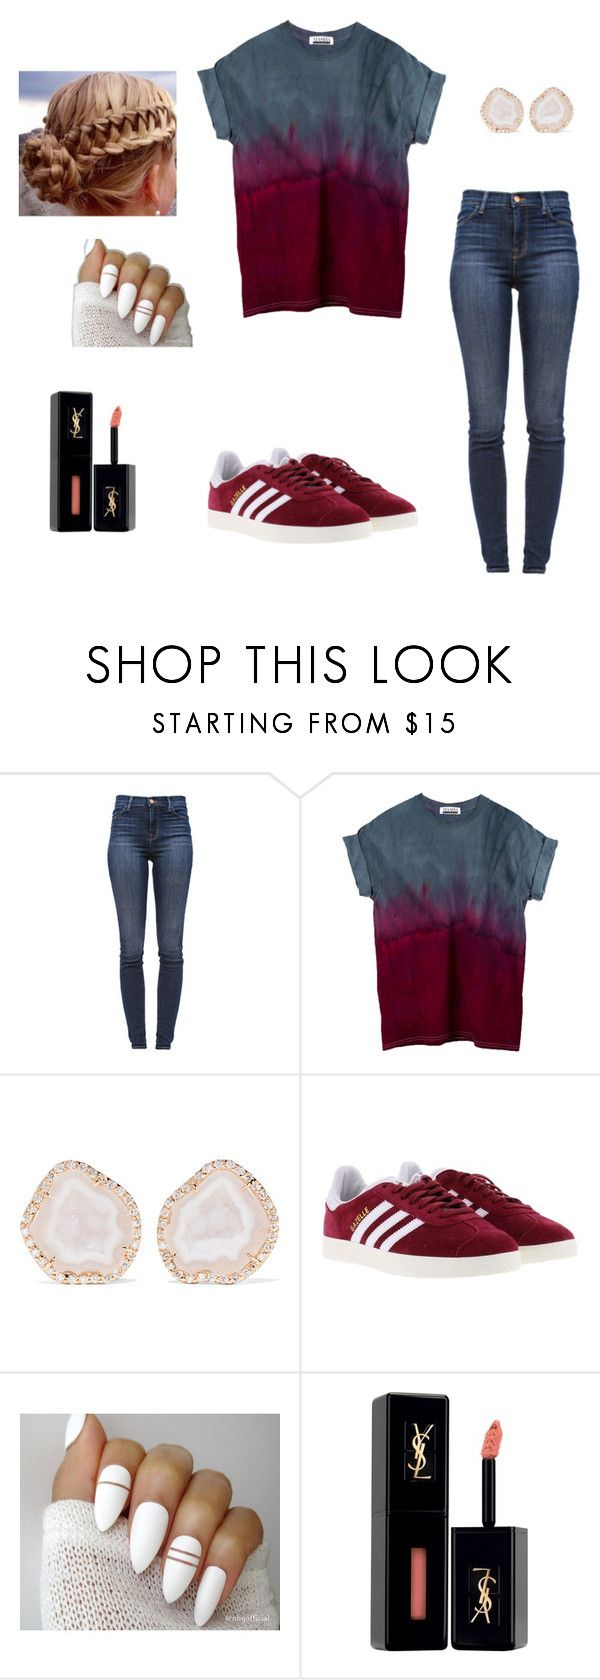 """""""Lazy Girls love Lazy Days"""" by brophyash ❤ liked on Polyvore featuring J Brand, Kimberly McDonald, adidas and Yves Saint Laurent"""